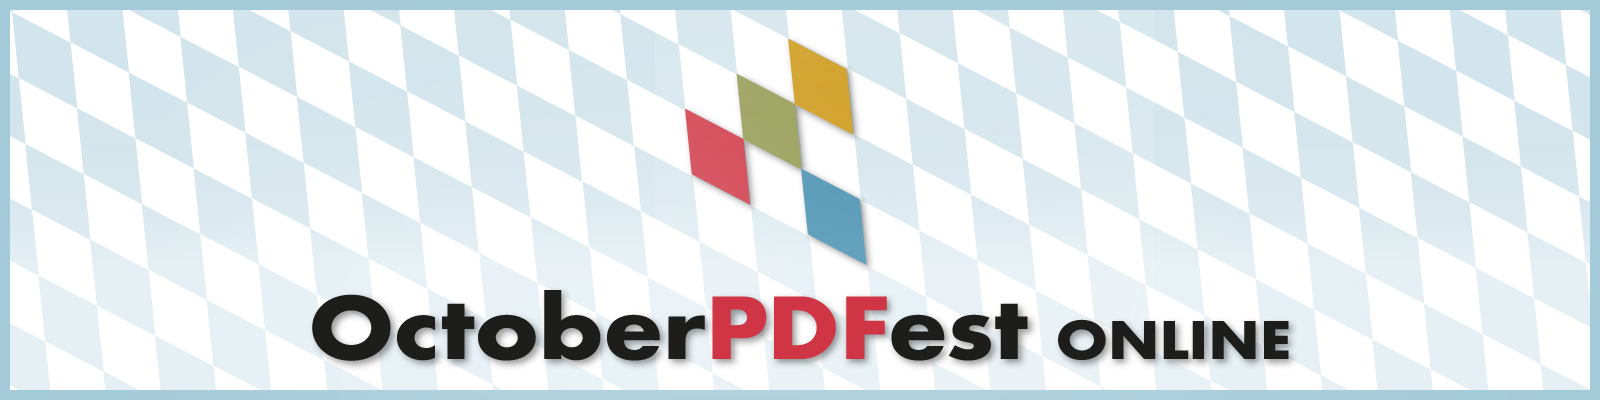 Banner with the logo for the October PDFest online.